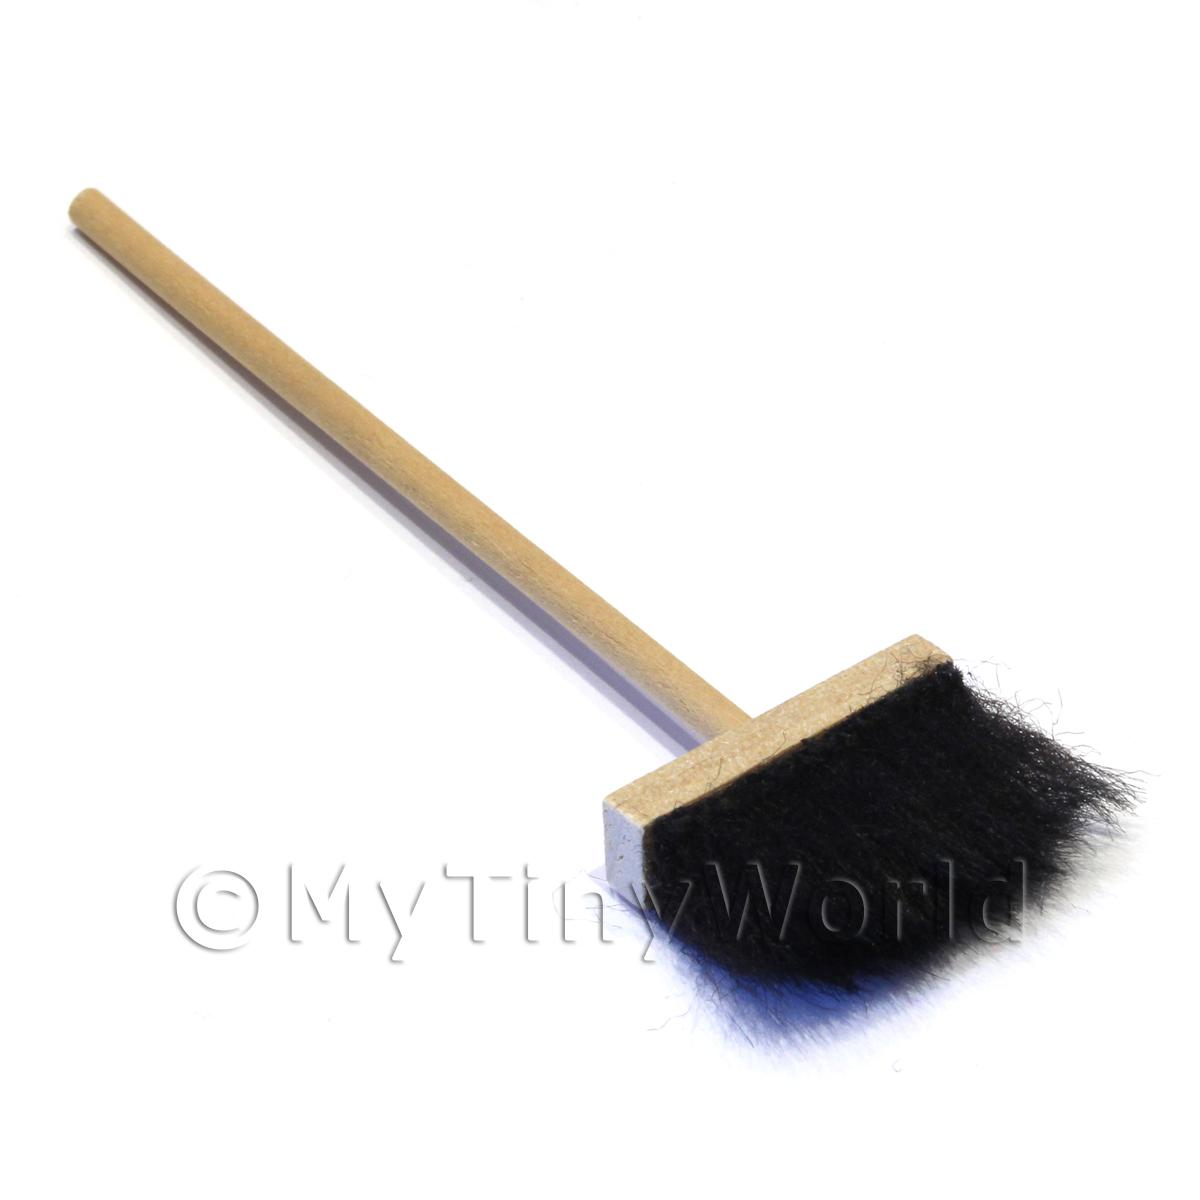 Dolls House Miniature Wood Broom With Soft Brush